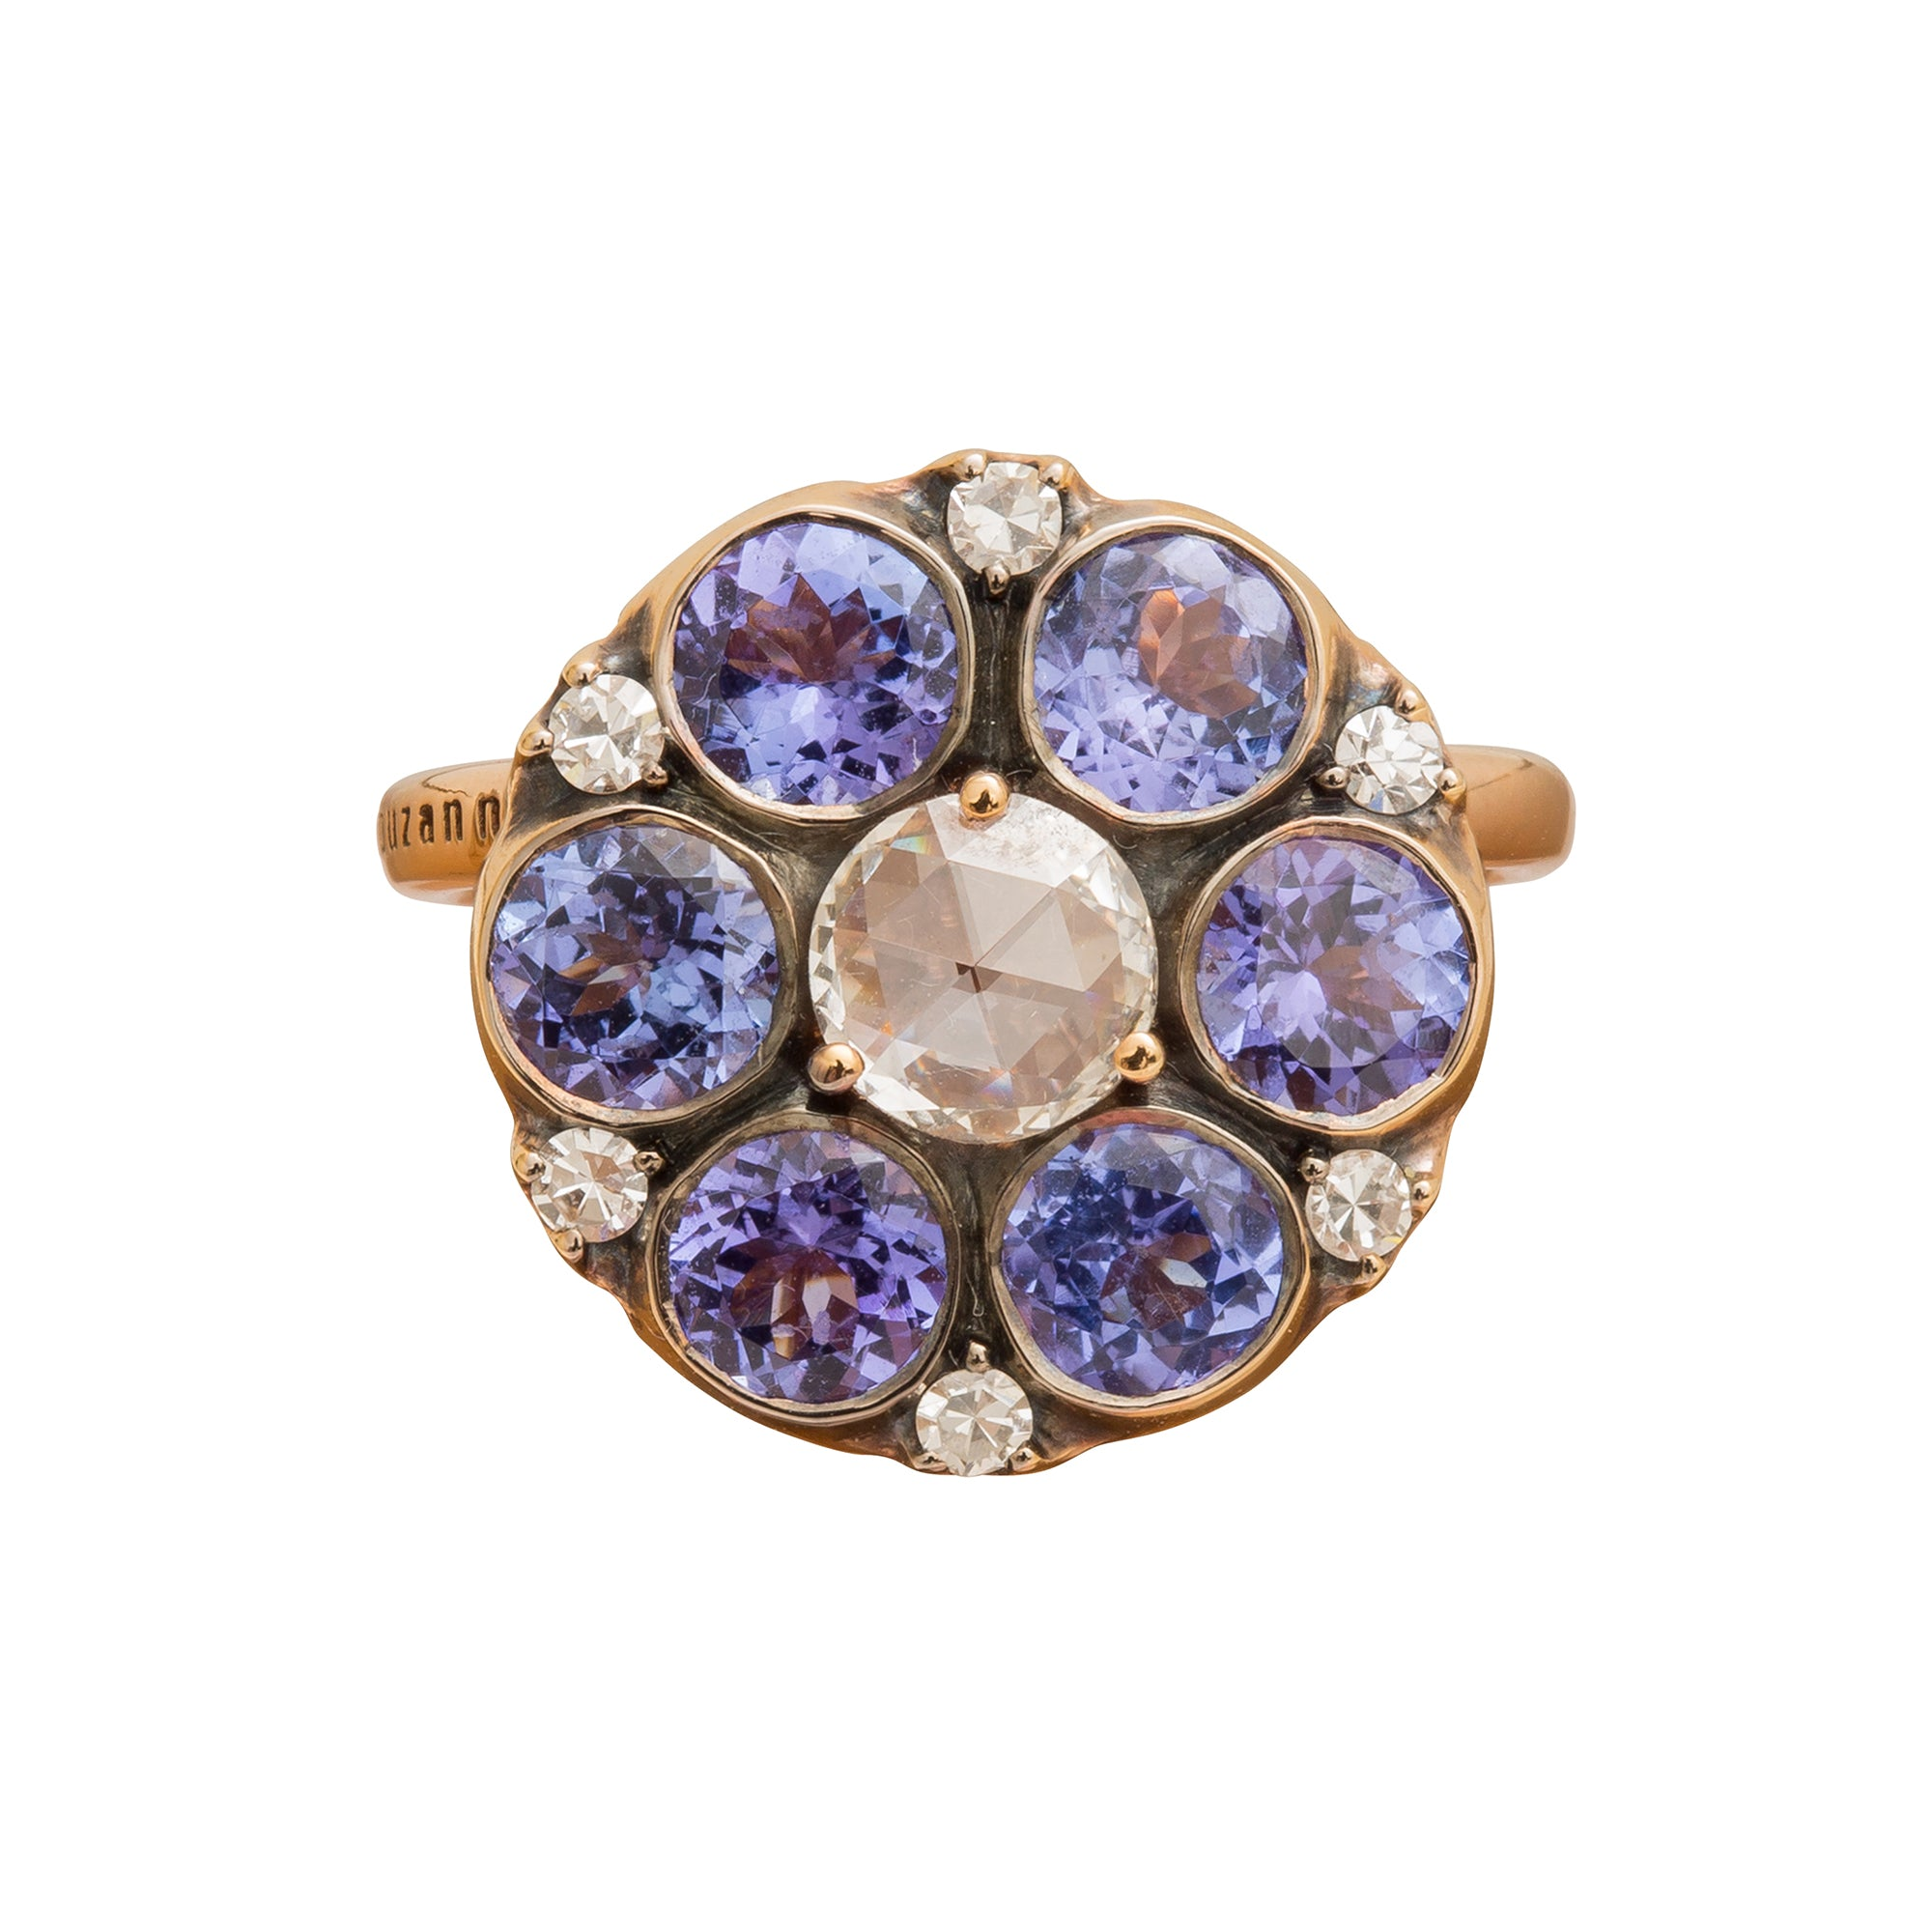 Beirut Tanzanite Ring by Selim Mouzannar for Broken English Jewelry